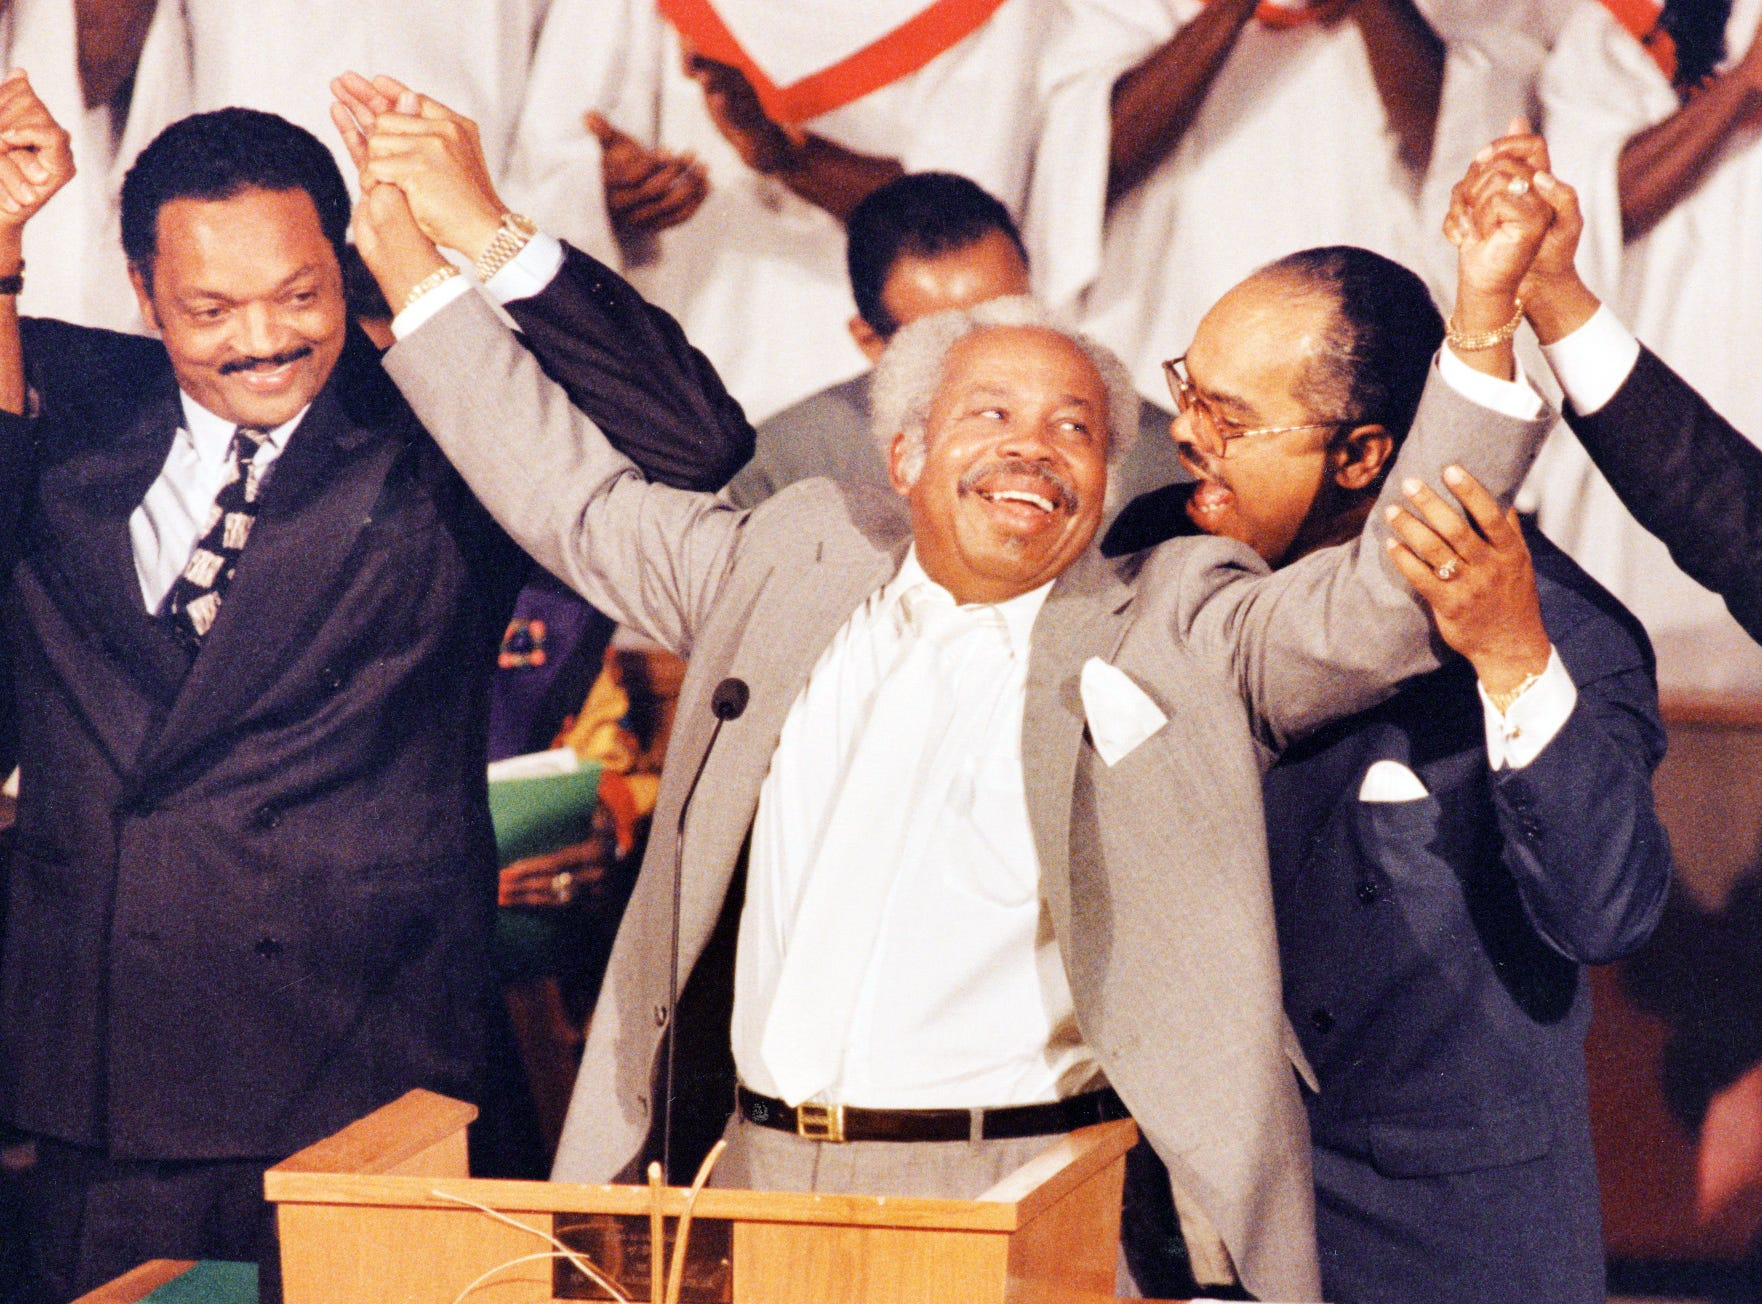 The Rev. Jesse L. Jackson (left) honored Rev. Andrew J. Brown (center) with the PUSH Excellence Award at the Indiana Black Expo Ecumenical Service on July 17, 1991. The Rev. T. Garrott Benjamin, whose Light of the World Christian Church (Disciples of Christ) hosted the service, is shown at right. Widely regarded as the city's foremost civil rights leader, Rev. Brown pastored the St. John Missionary Baptist Church for many years before stepping down in September 1990.